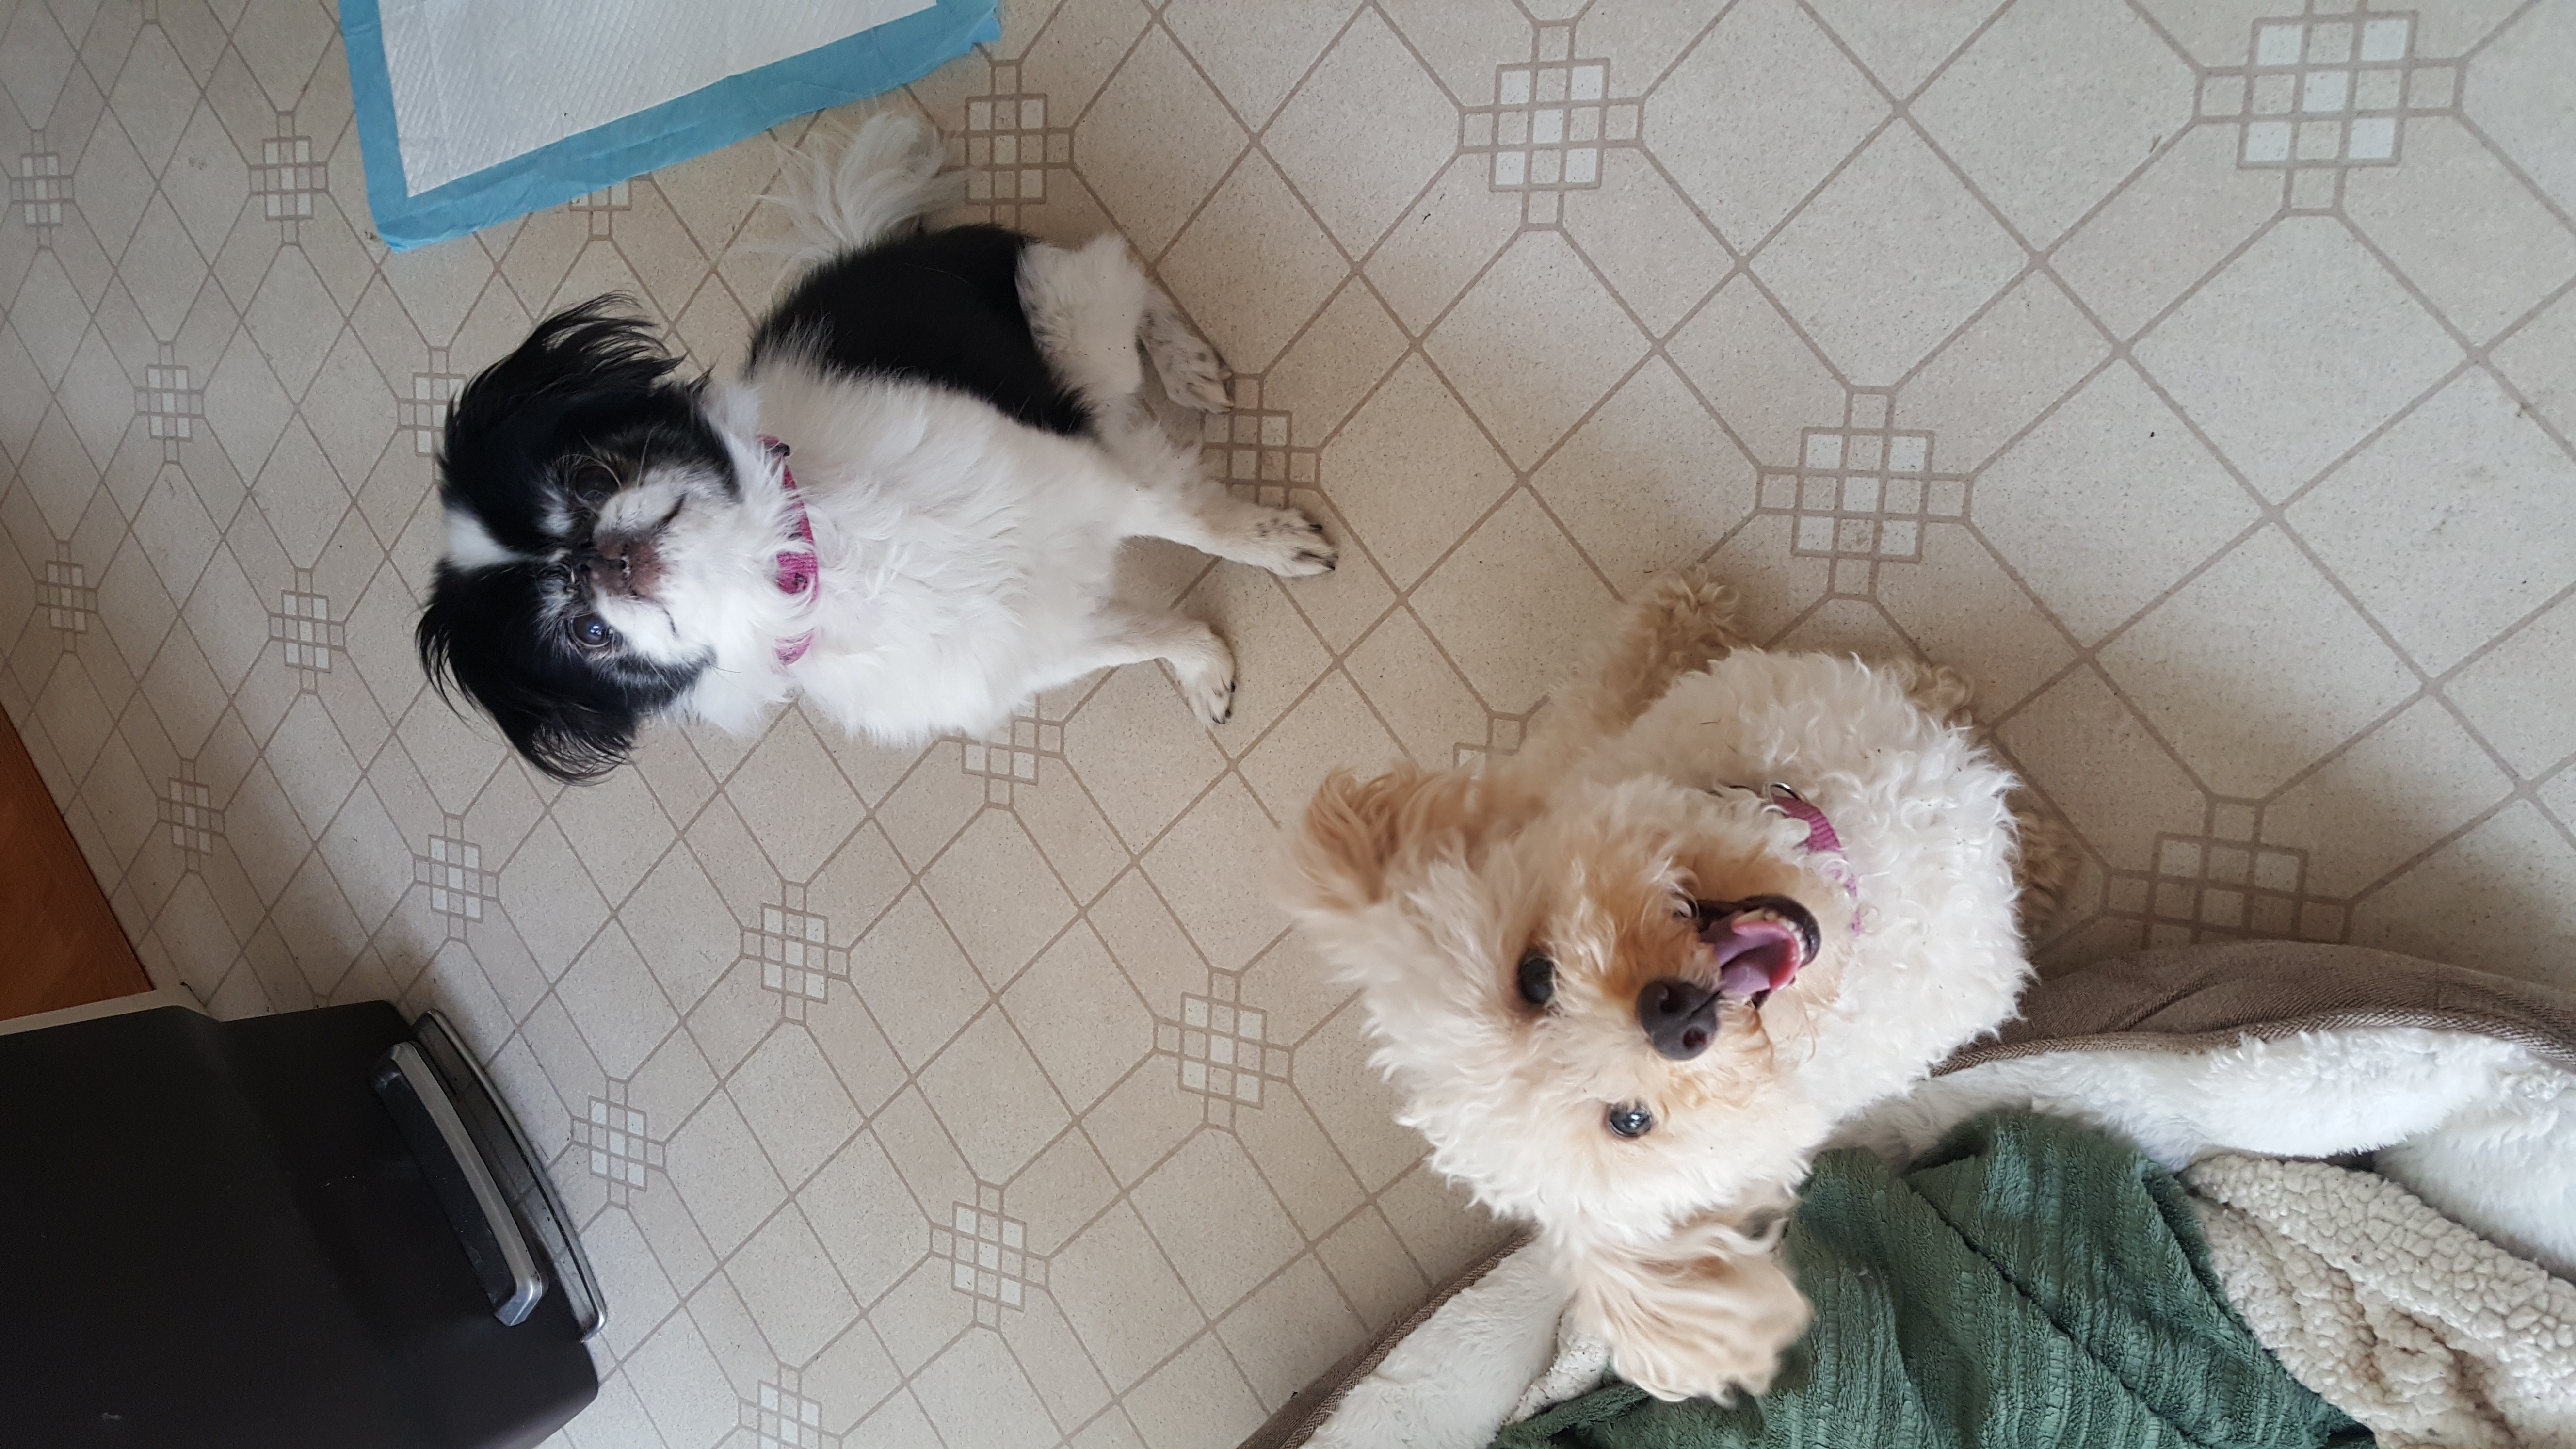 toy poodle Japanese chin Pikesville dog care